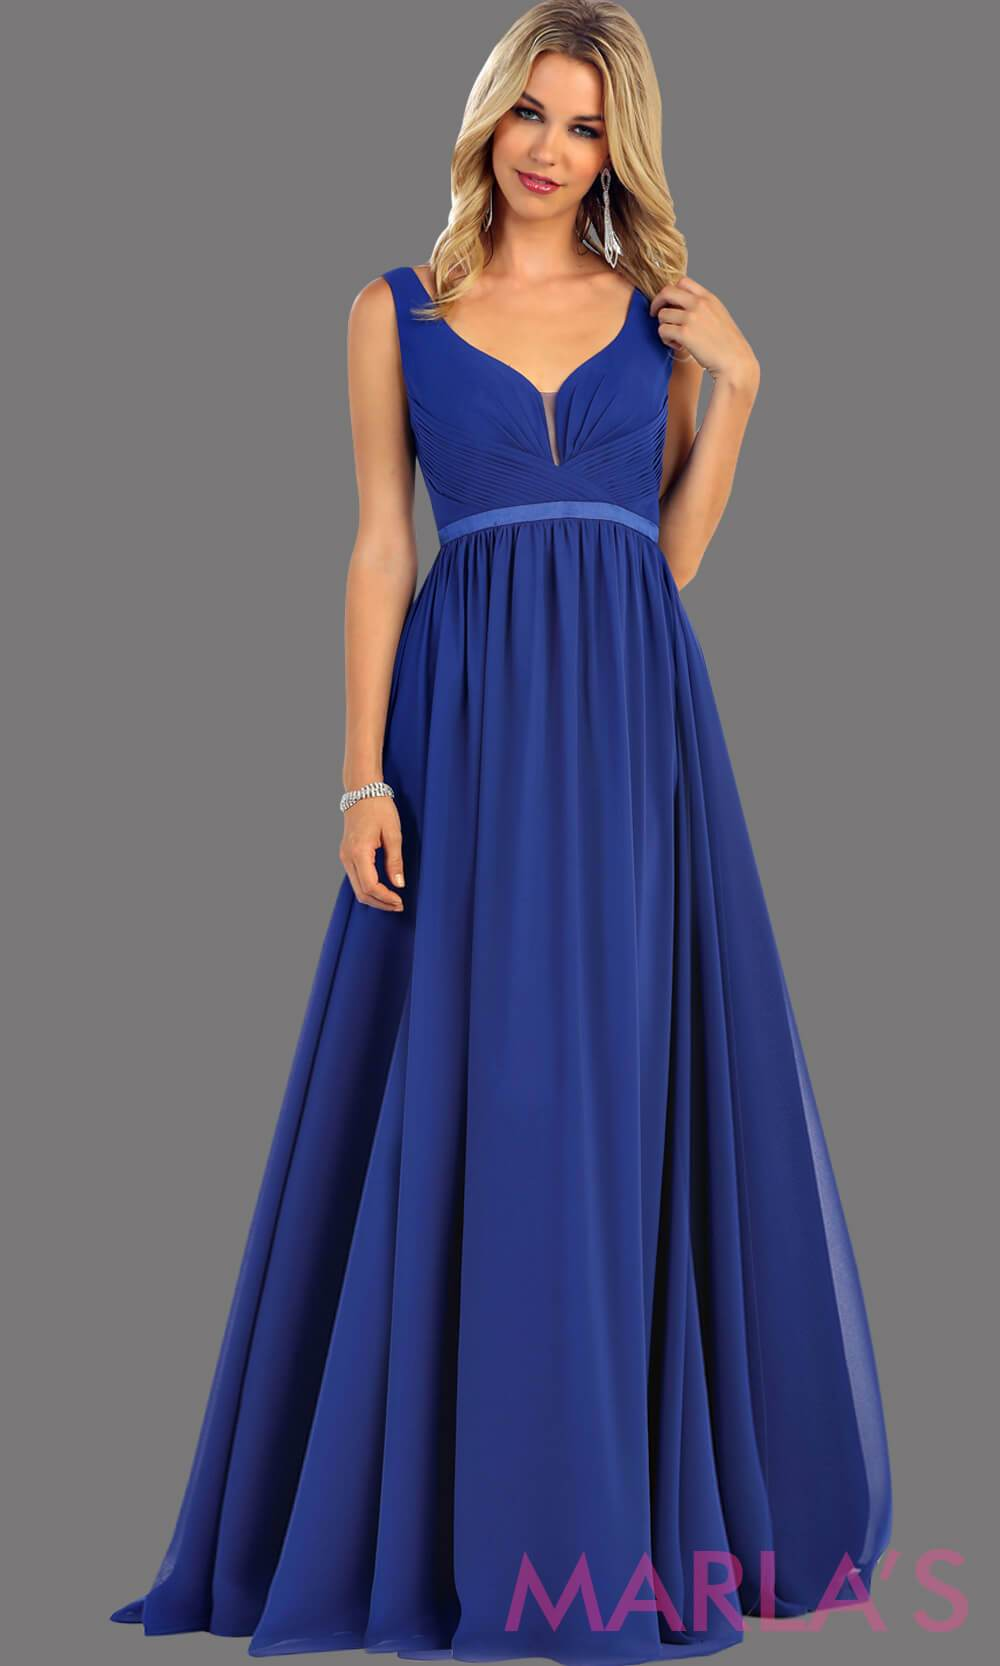 474b2bc88b0 Simple Royal Blue Prom Dresses - Data Dynamic AG